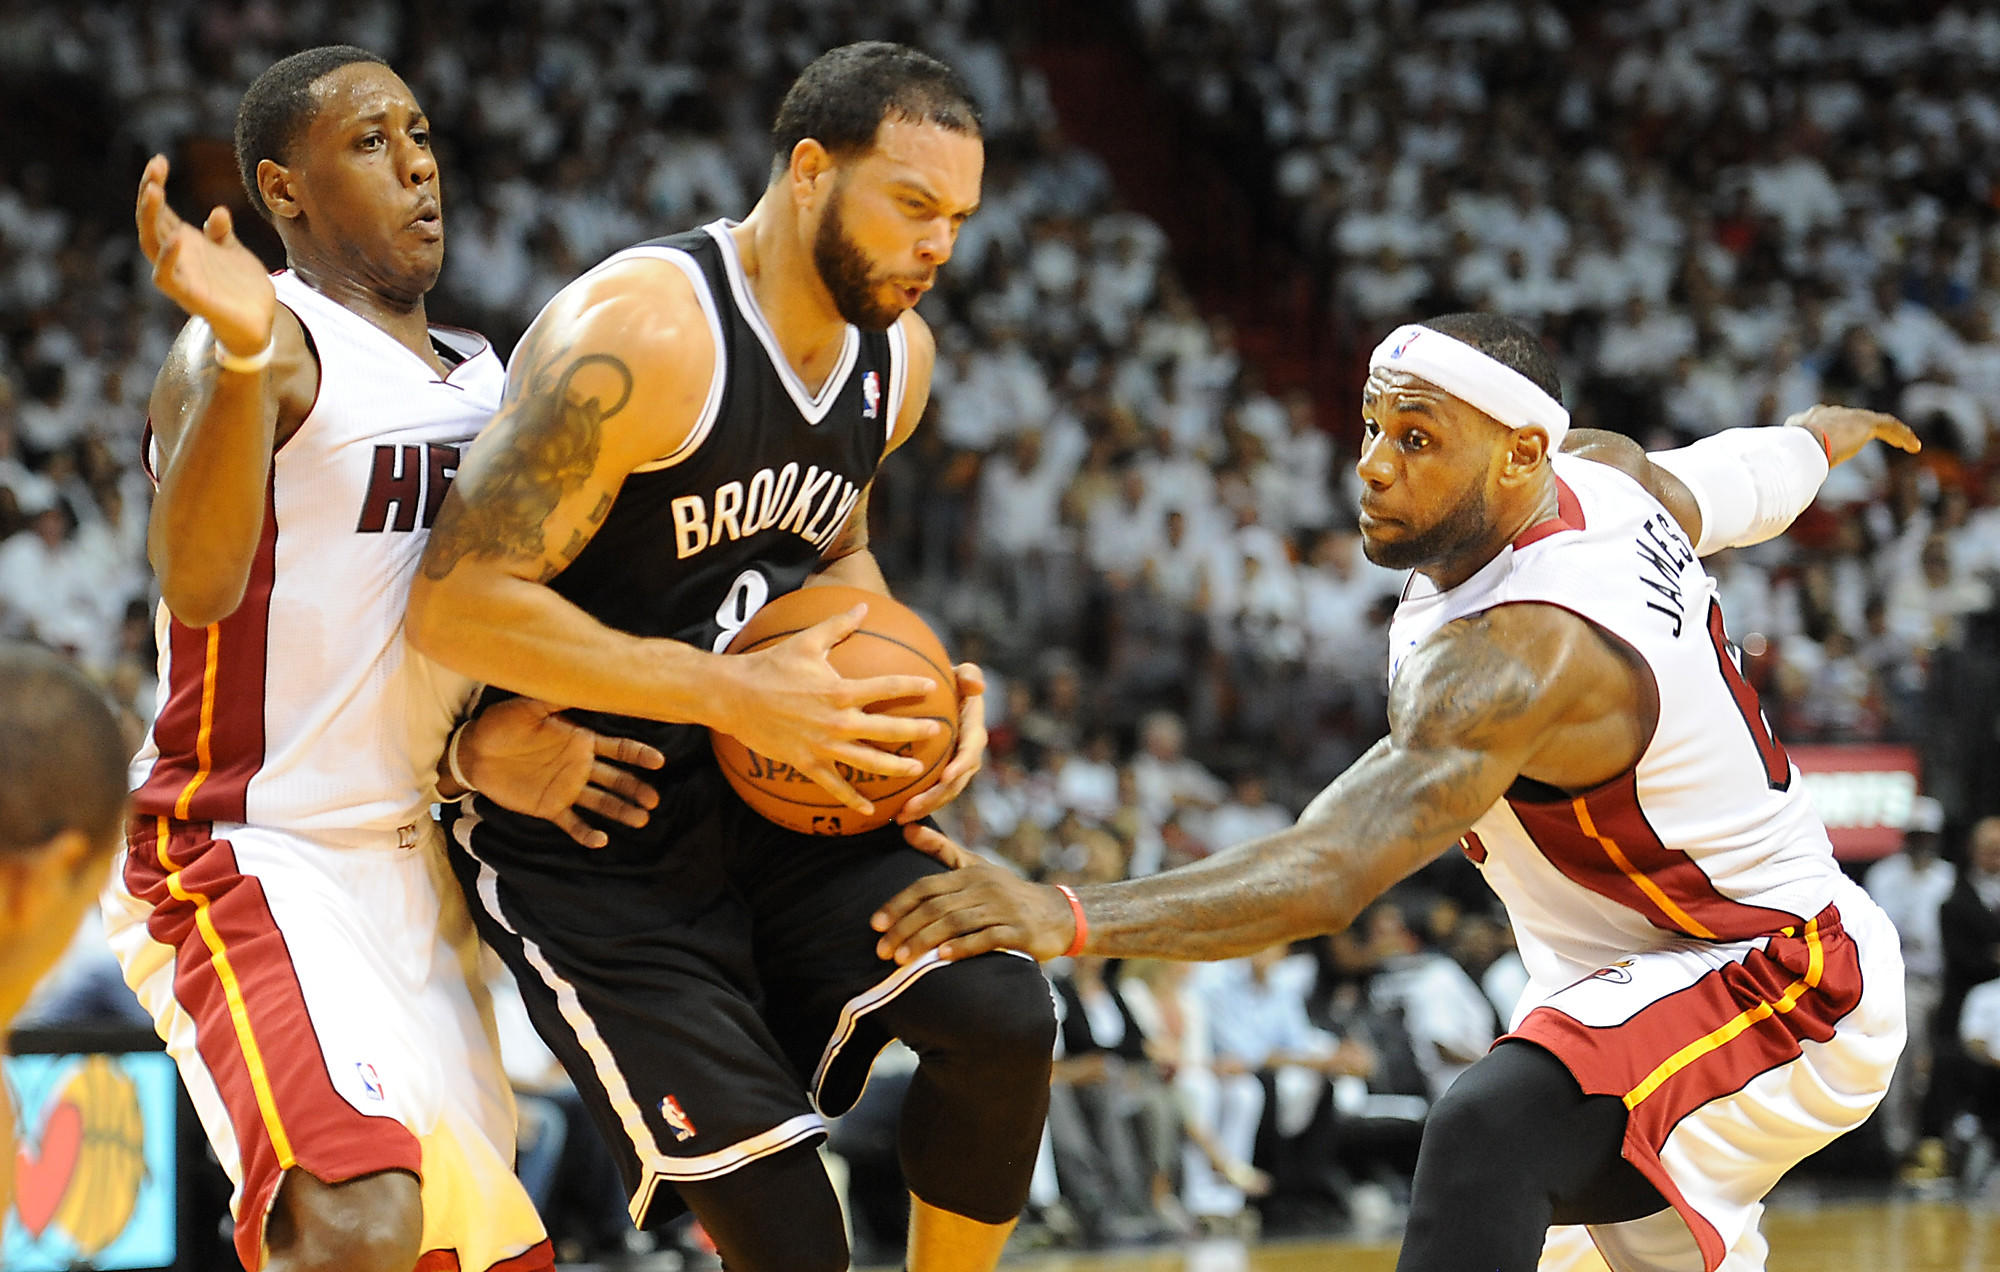 The Miami Heat host the Brooklyn Nets at American Airlines Arena for game two of the Eastern Conference semi-finals. Brooklyn's Deron Williams tries to squeeze between the defense of Mario Chalmers and LeBron James.